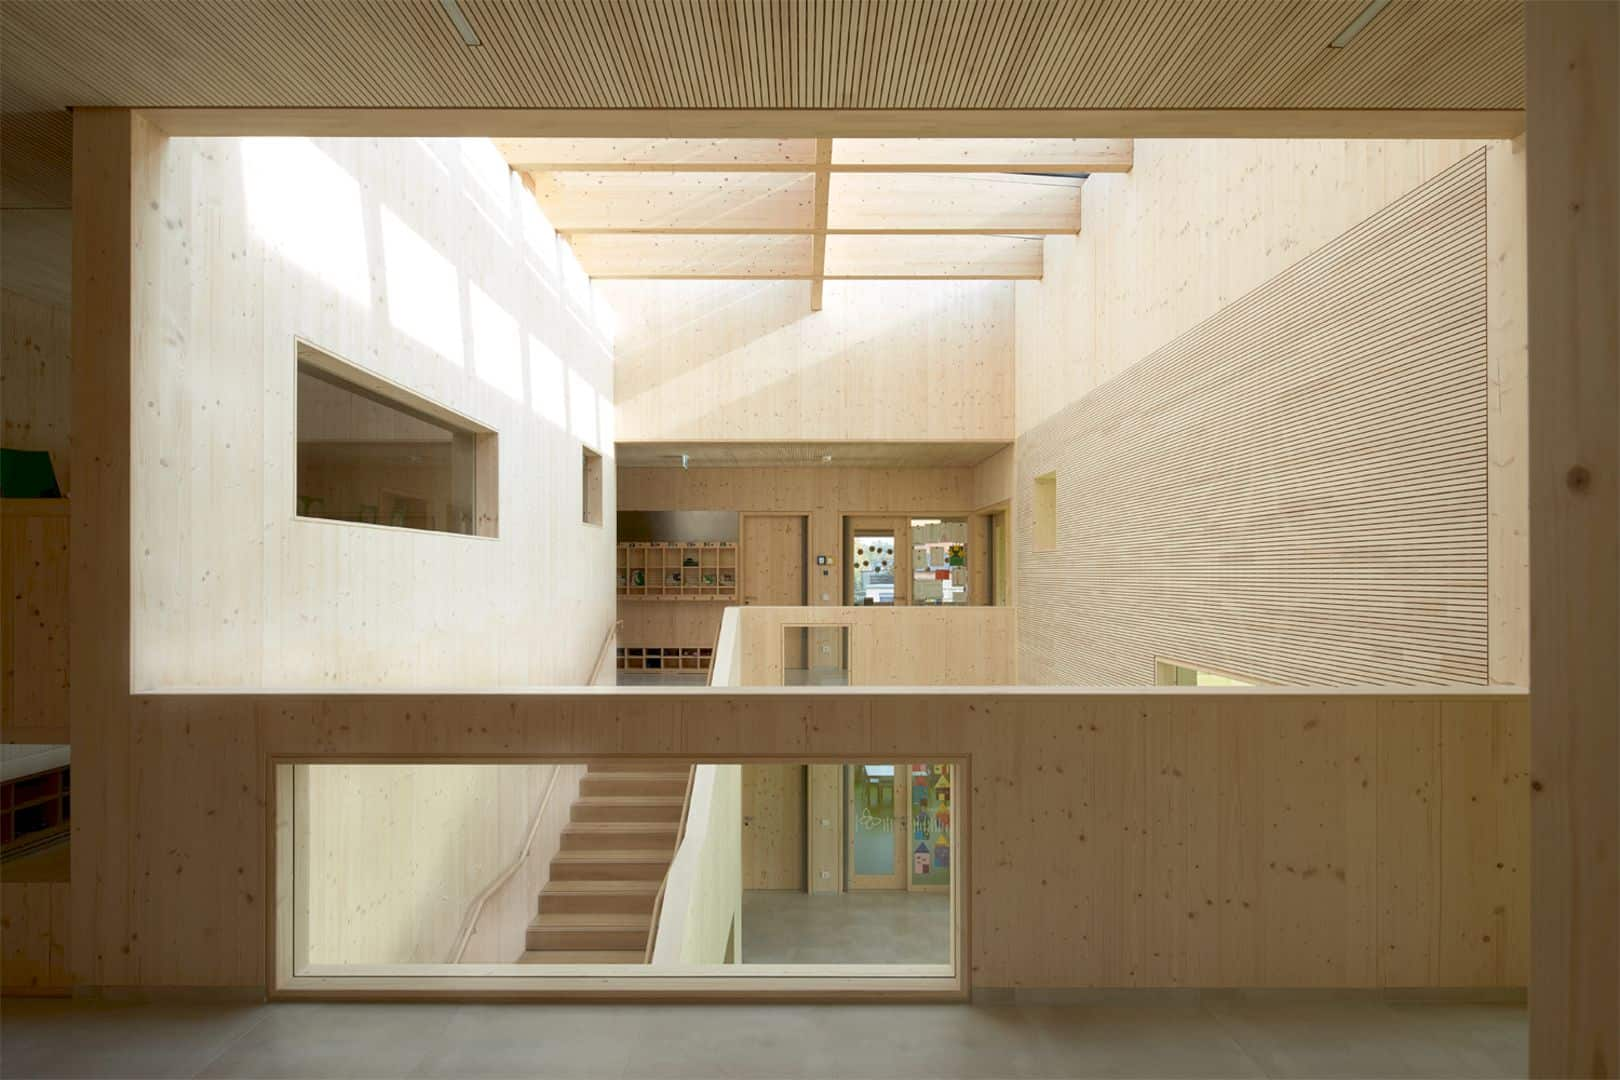 Kindergarten St Laurentius By Goldbrunner Architektur 4